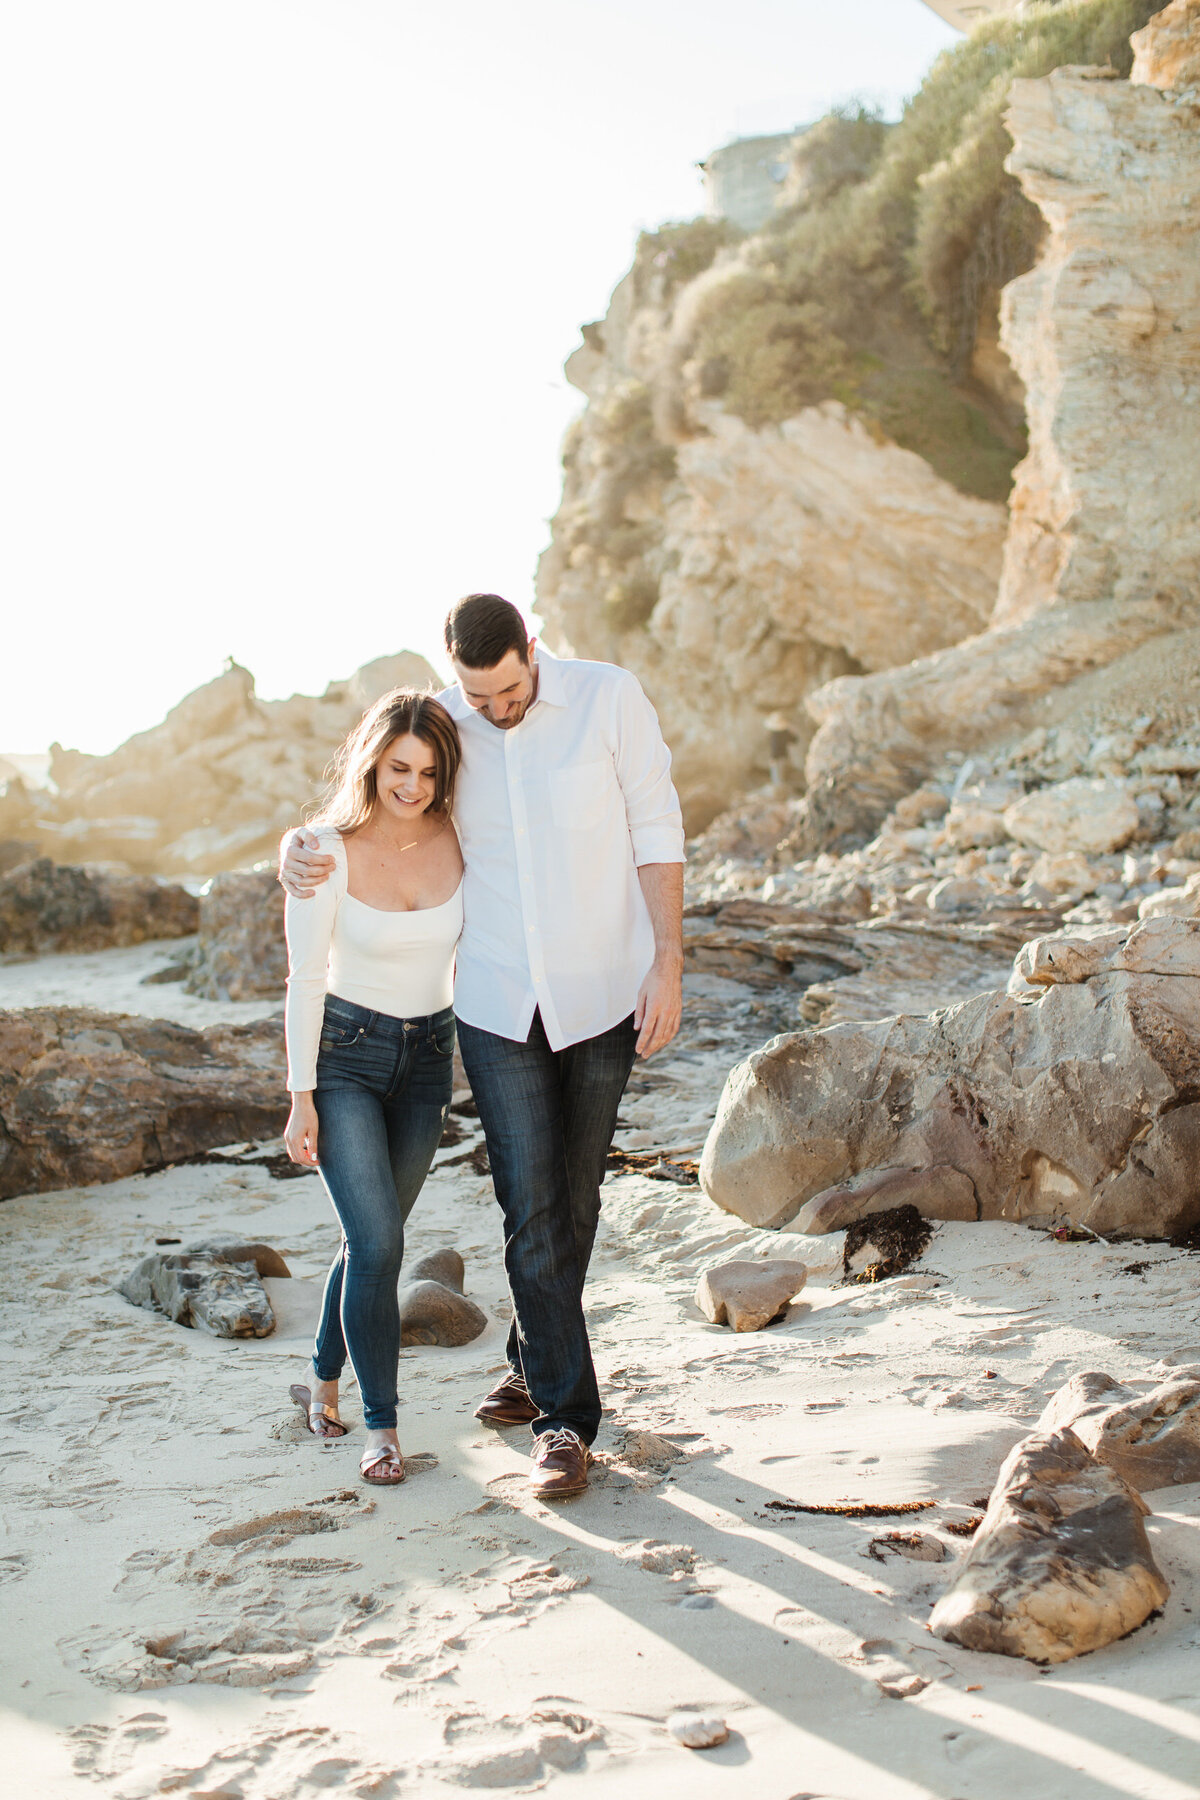 corona-del-mar-engagement-photos-oc-wedding-photographer-erin-marton-photography-15